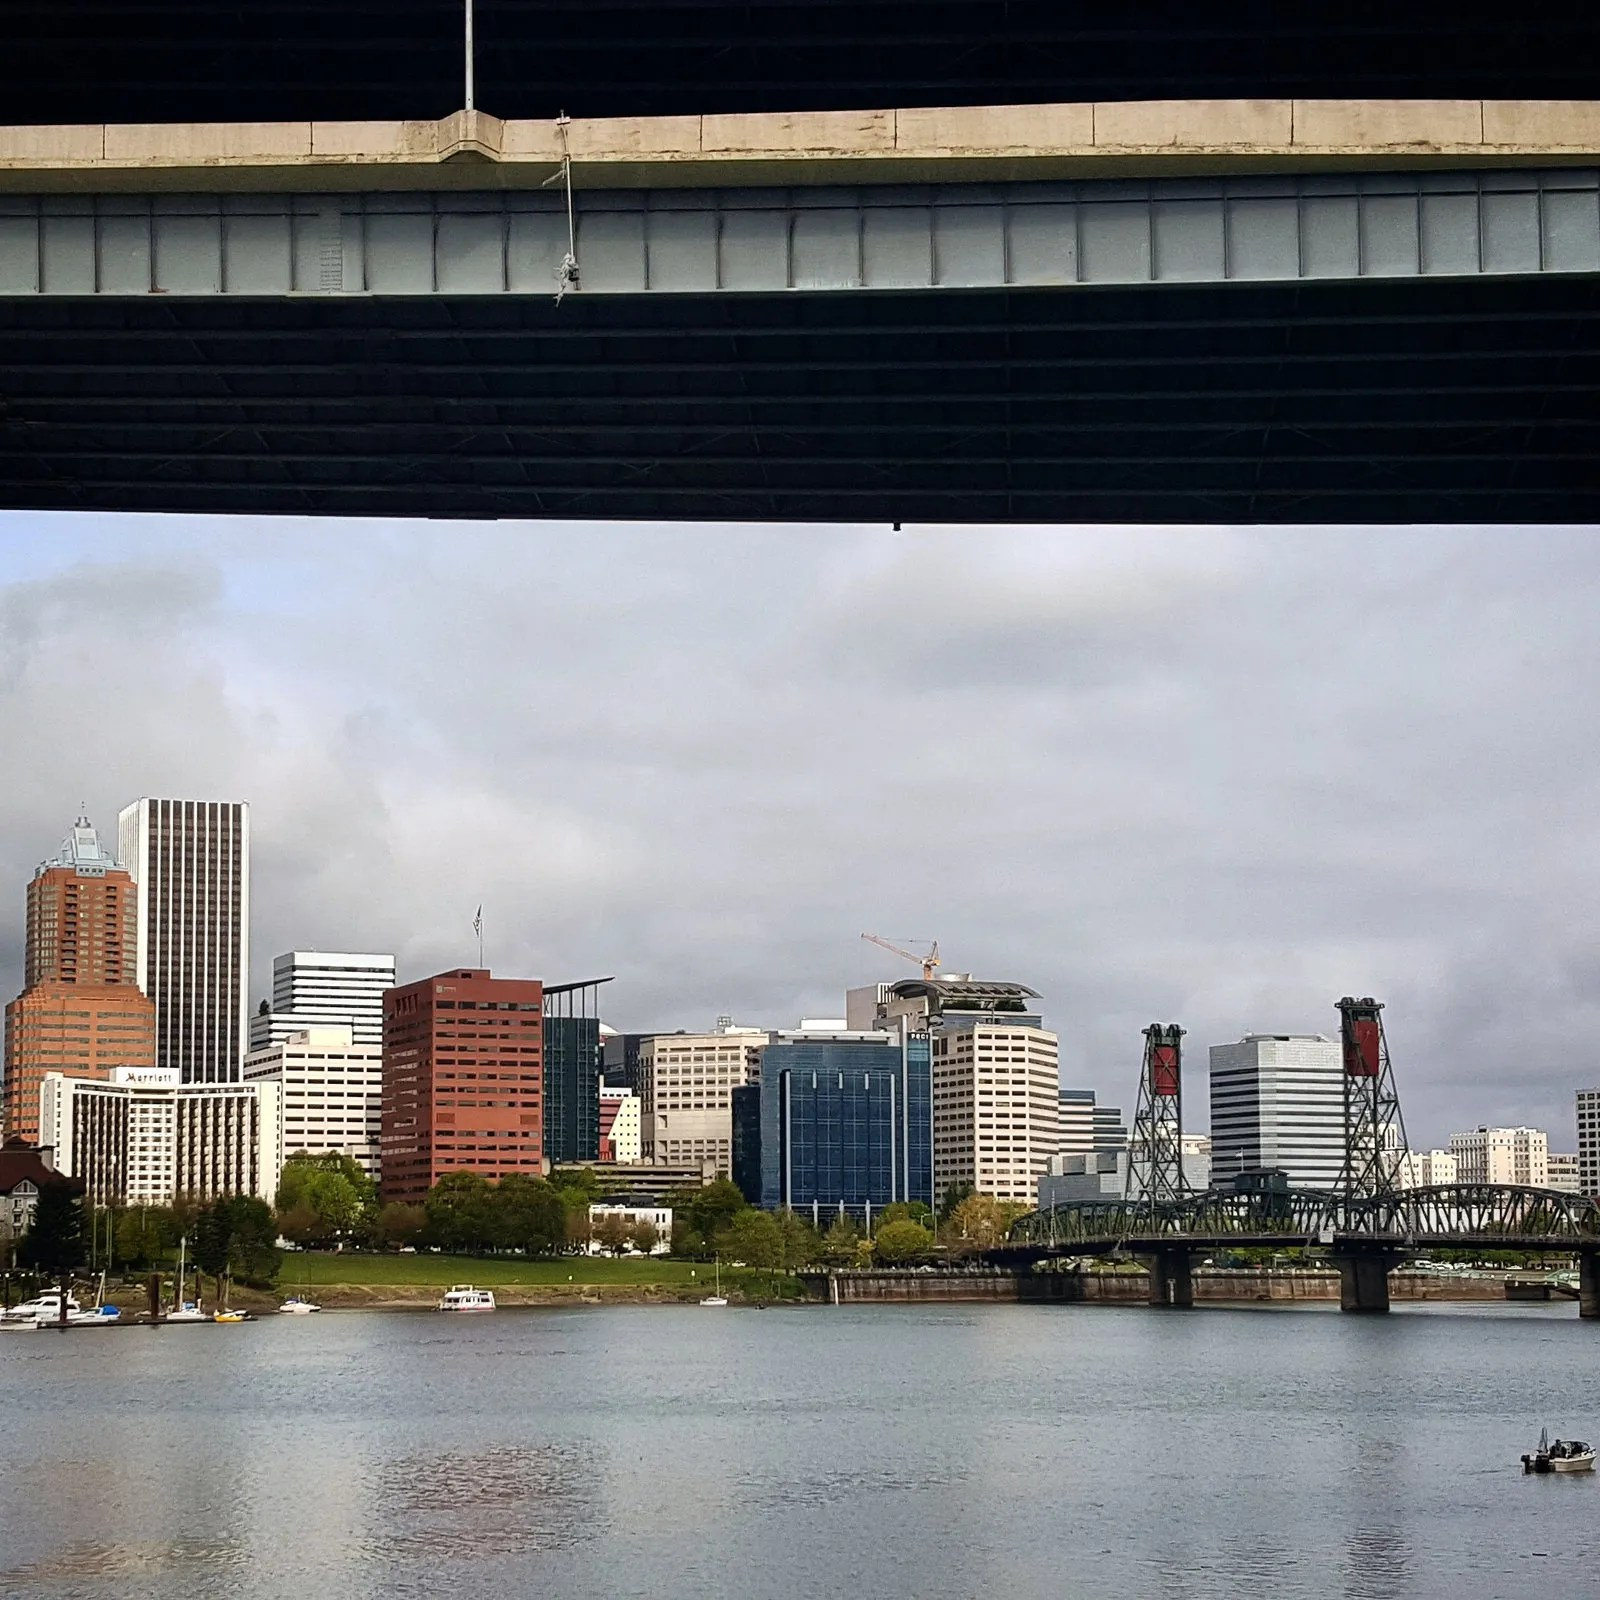 Portland waterfront under the Marquam Bridge